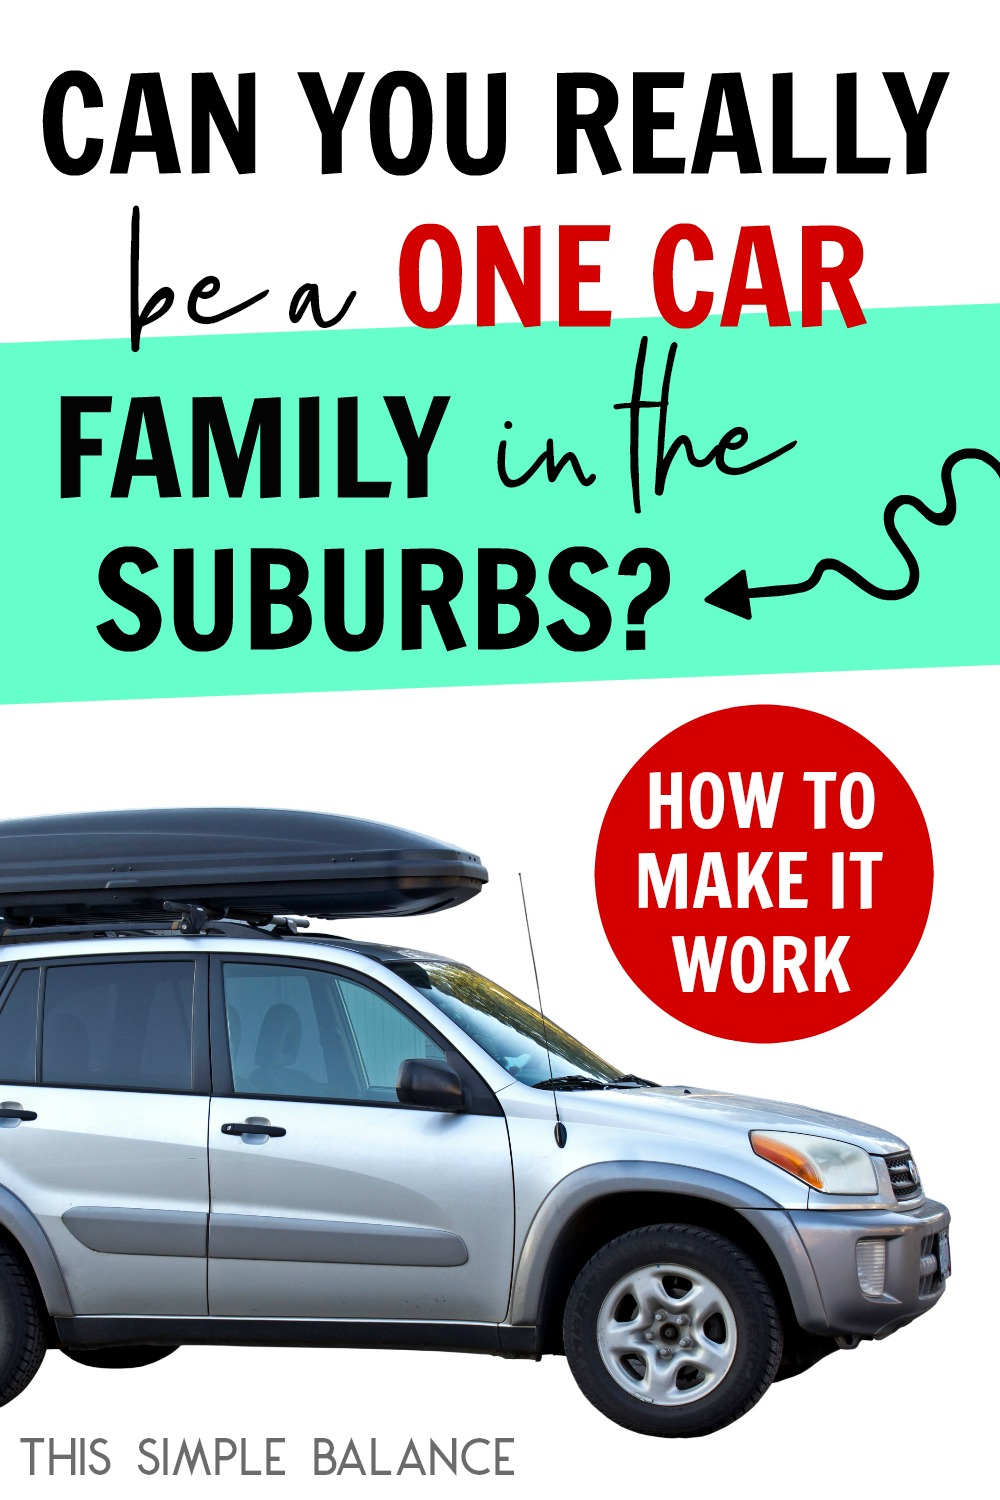 Being a one car family in the suburbs is unheard of today, but it IS possible. Get tips on how to make it work.